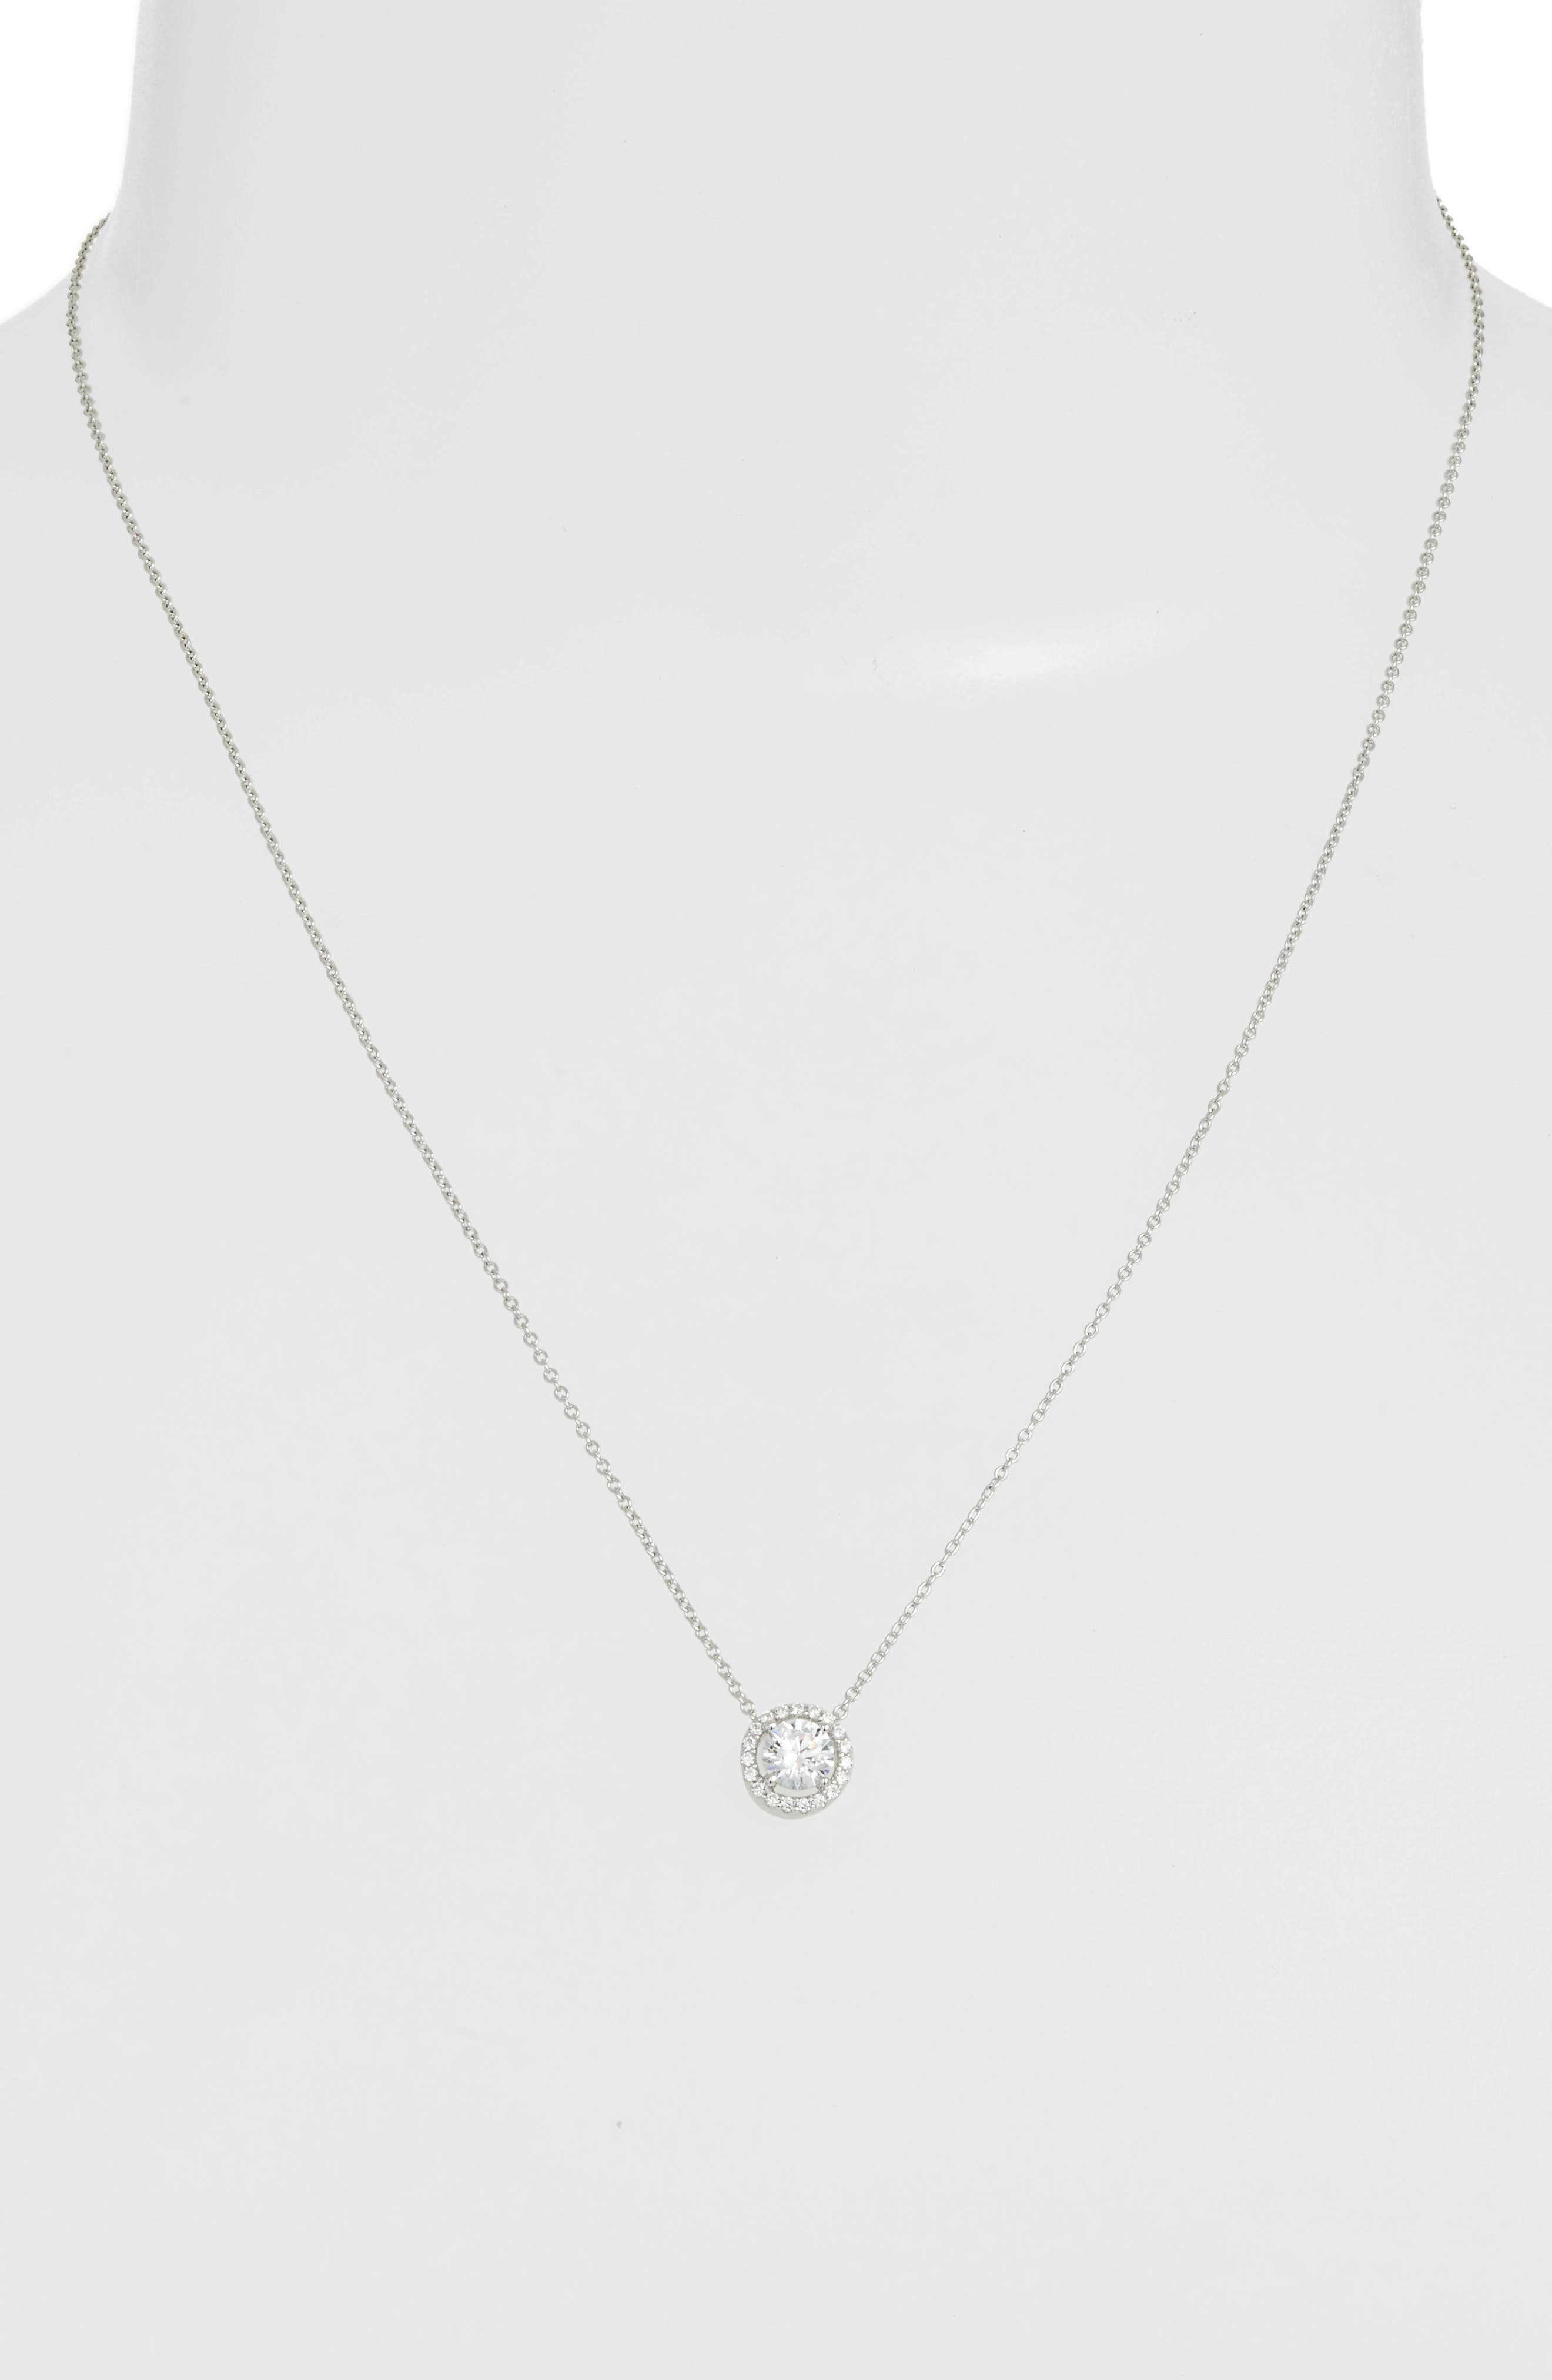 Round Halo Necklace,                             Alternate thumbnail 2, color,                             SILVER/ CLEAR